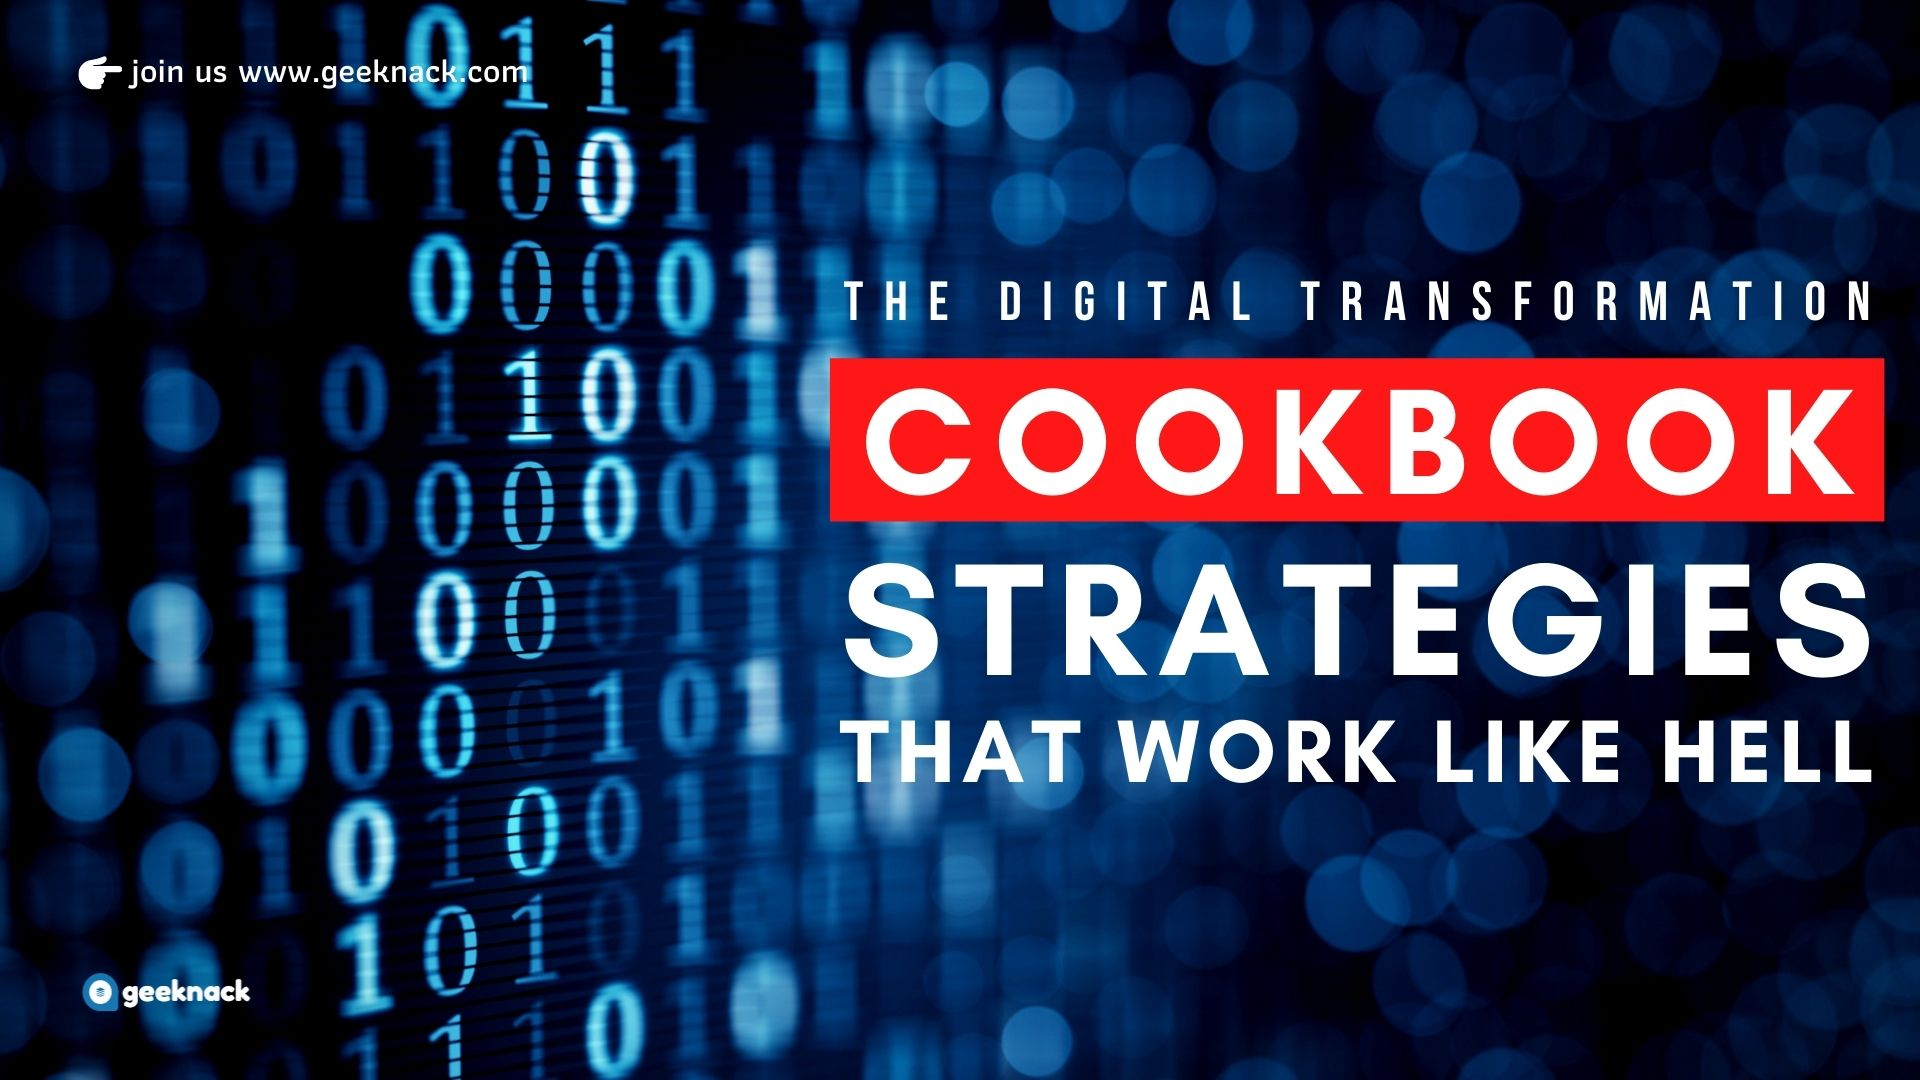 The Digital Transformation Cookbook Strategies That Work Like Hell